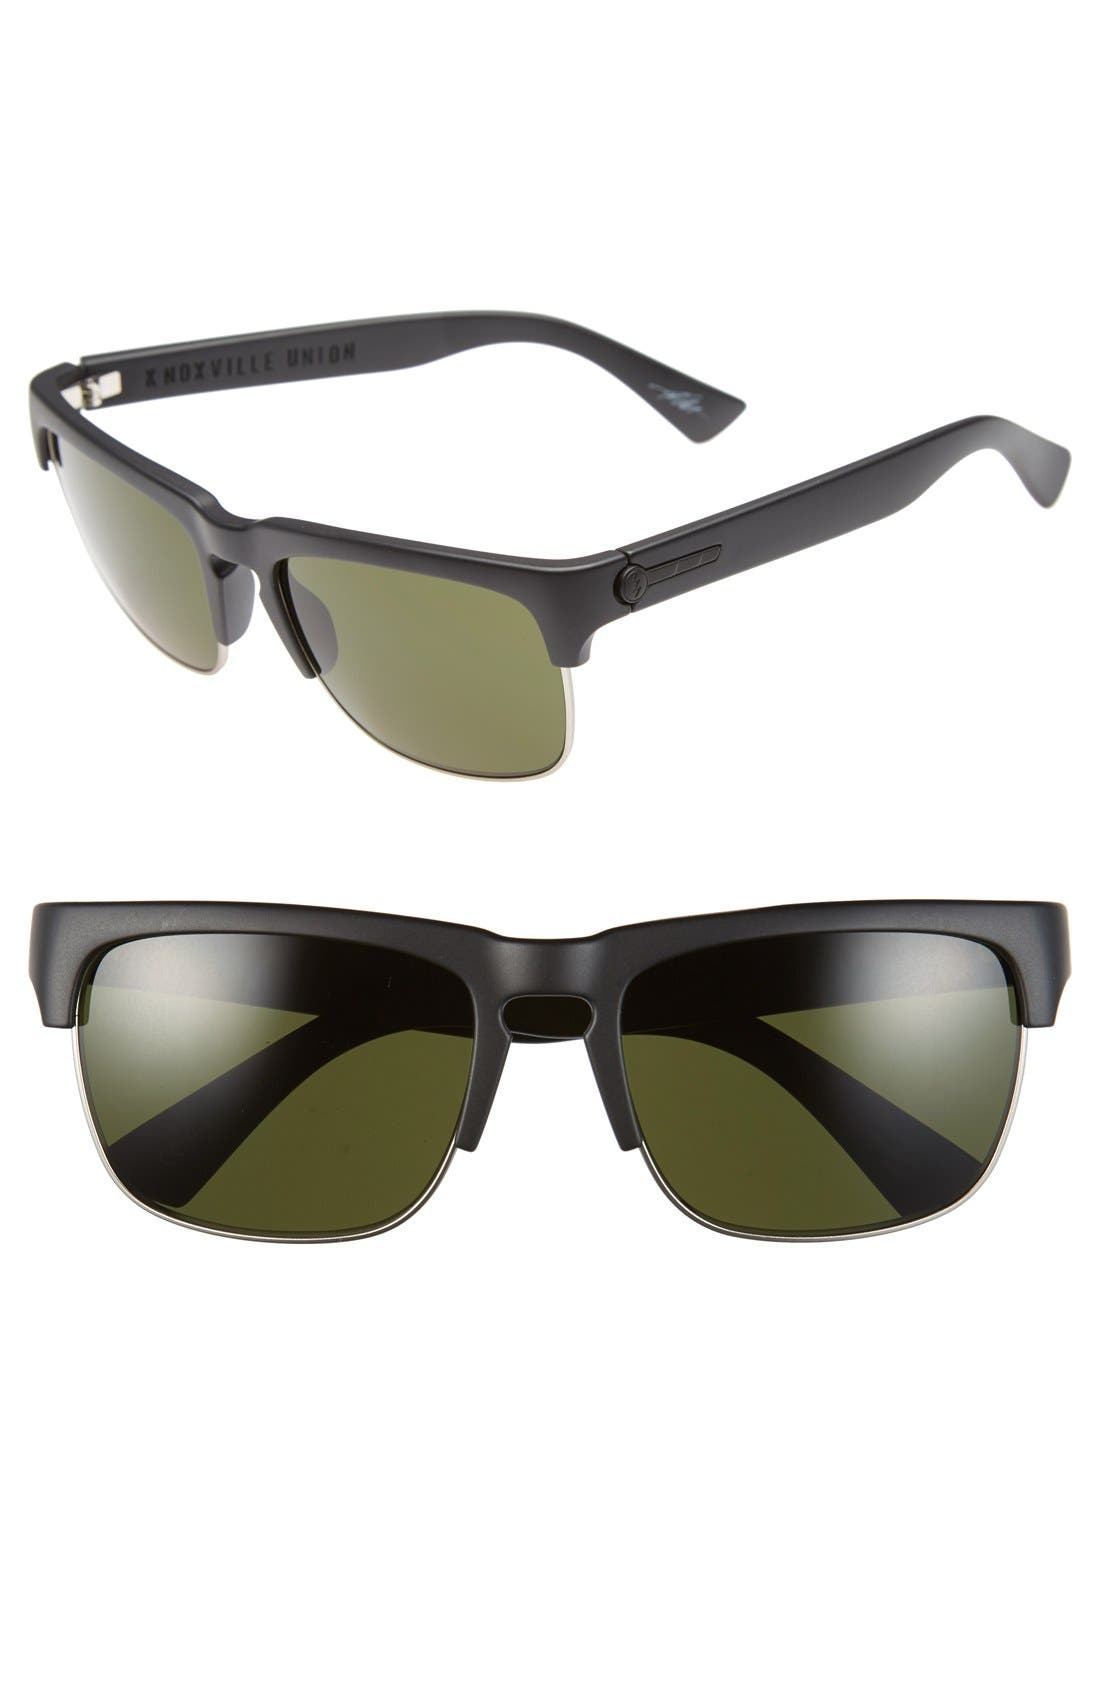 'Knoxville Union' 55mm Sunglasses,                             Main thumbnail 1, color,                             Matte Black/ Grey